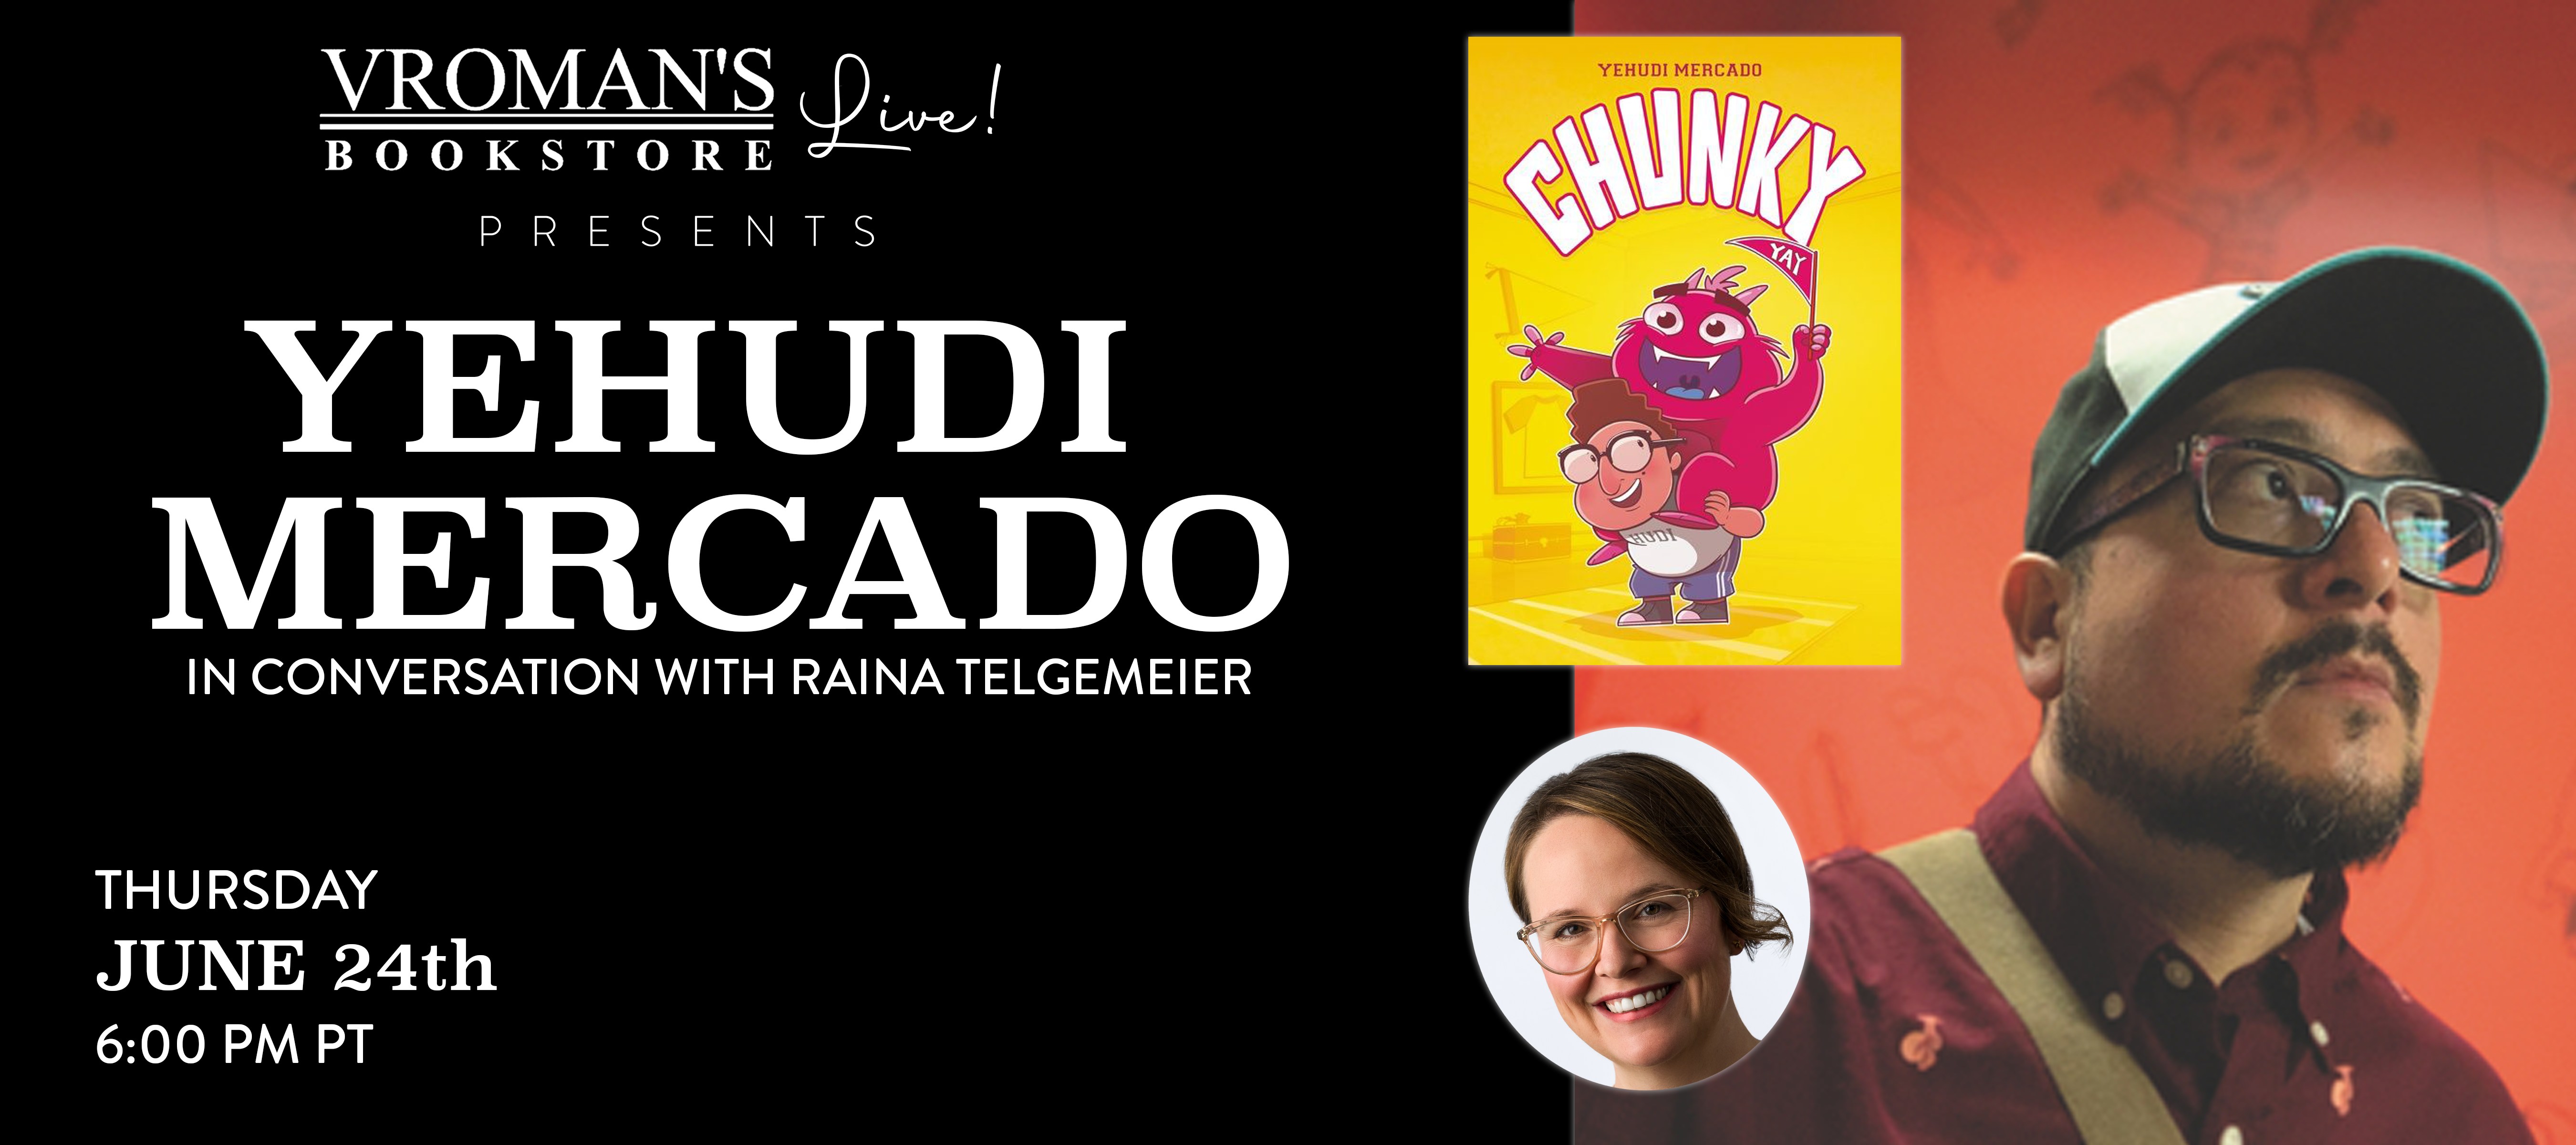 Vroman's Live -  Yehudi Mercado, in conversation with Raina Telgemeier, discusses Chunky on June 24th at 6pm on Crowdcast